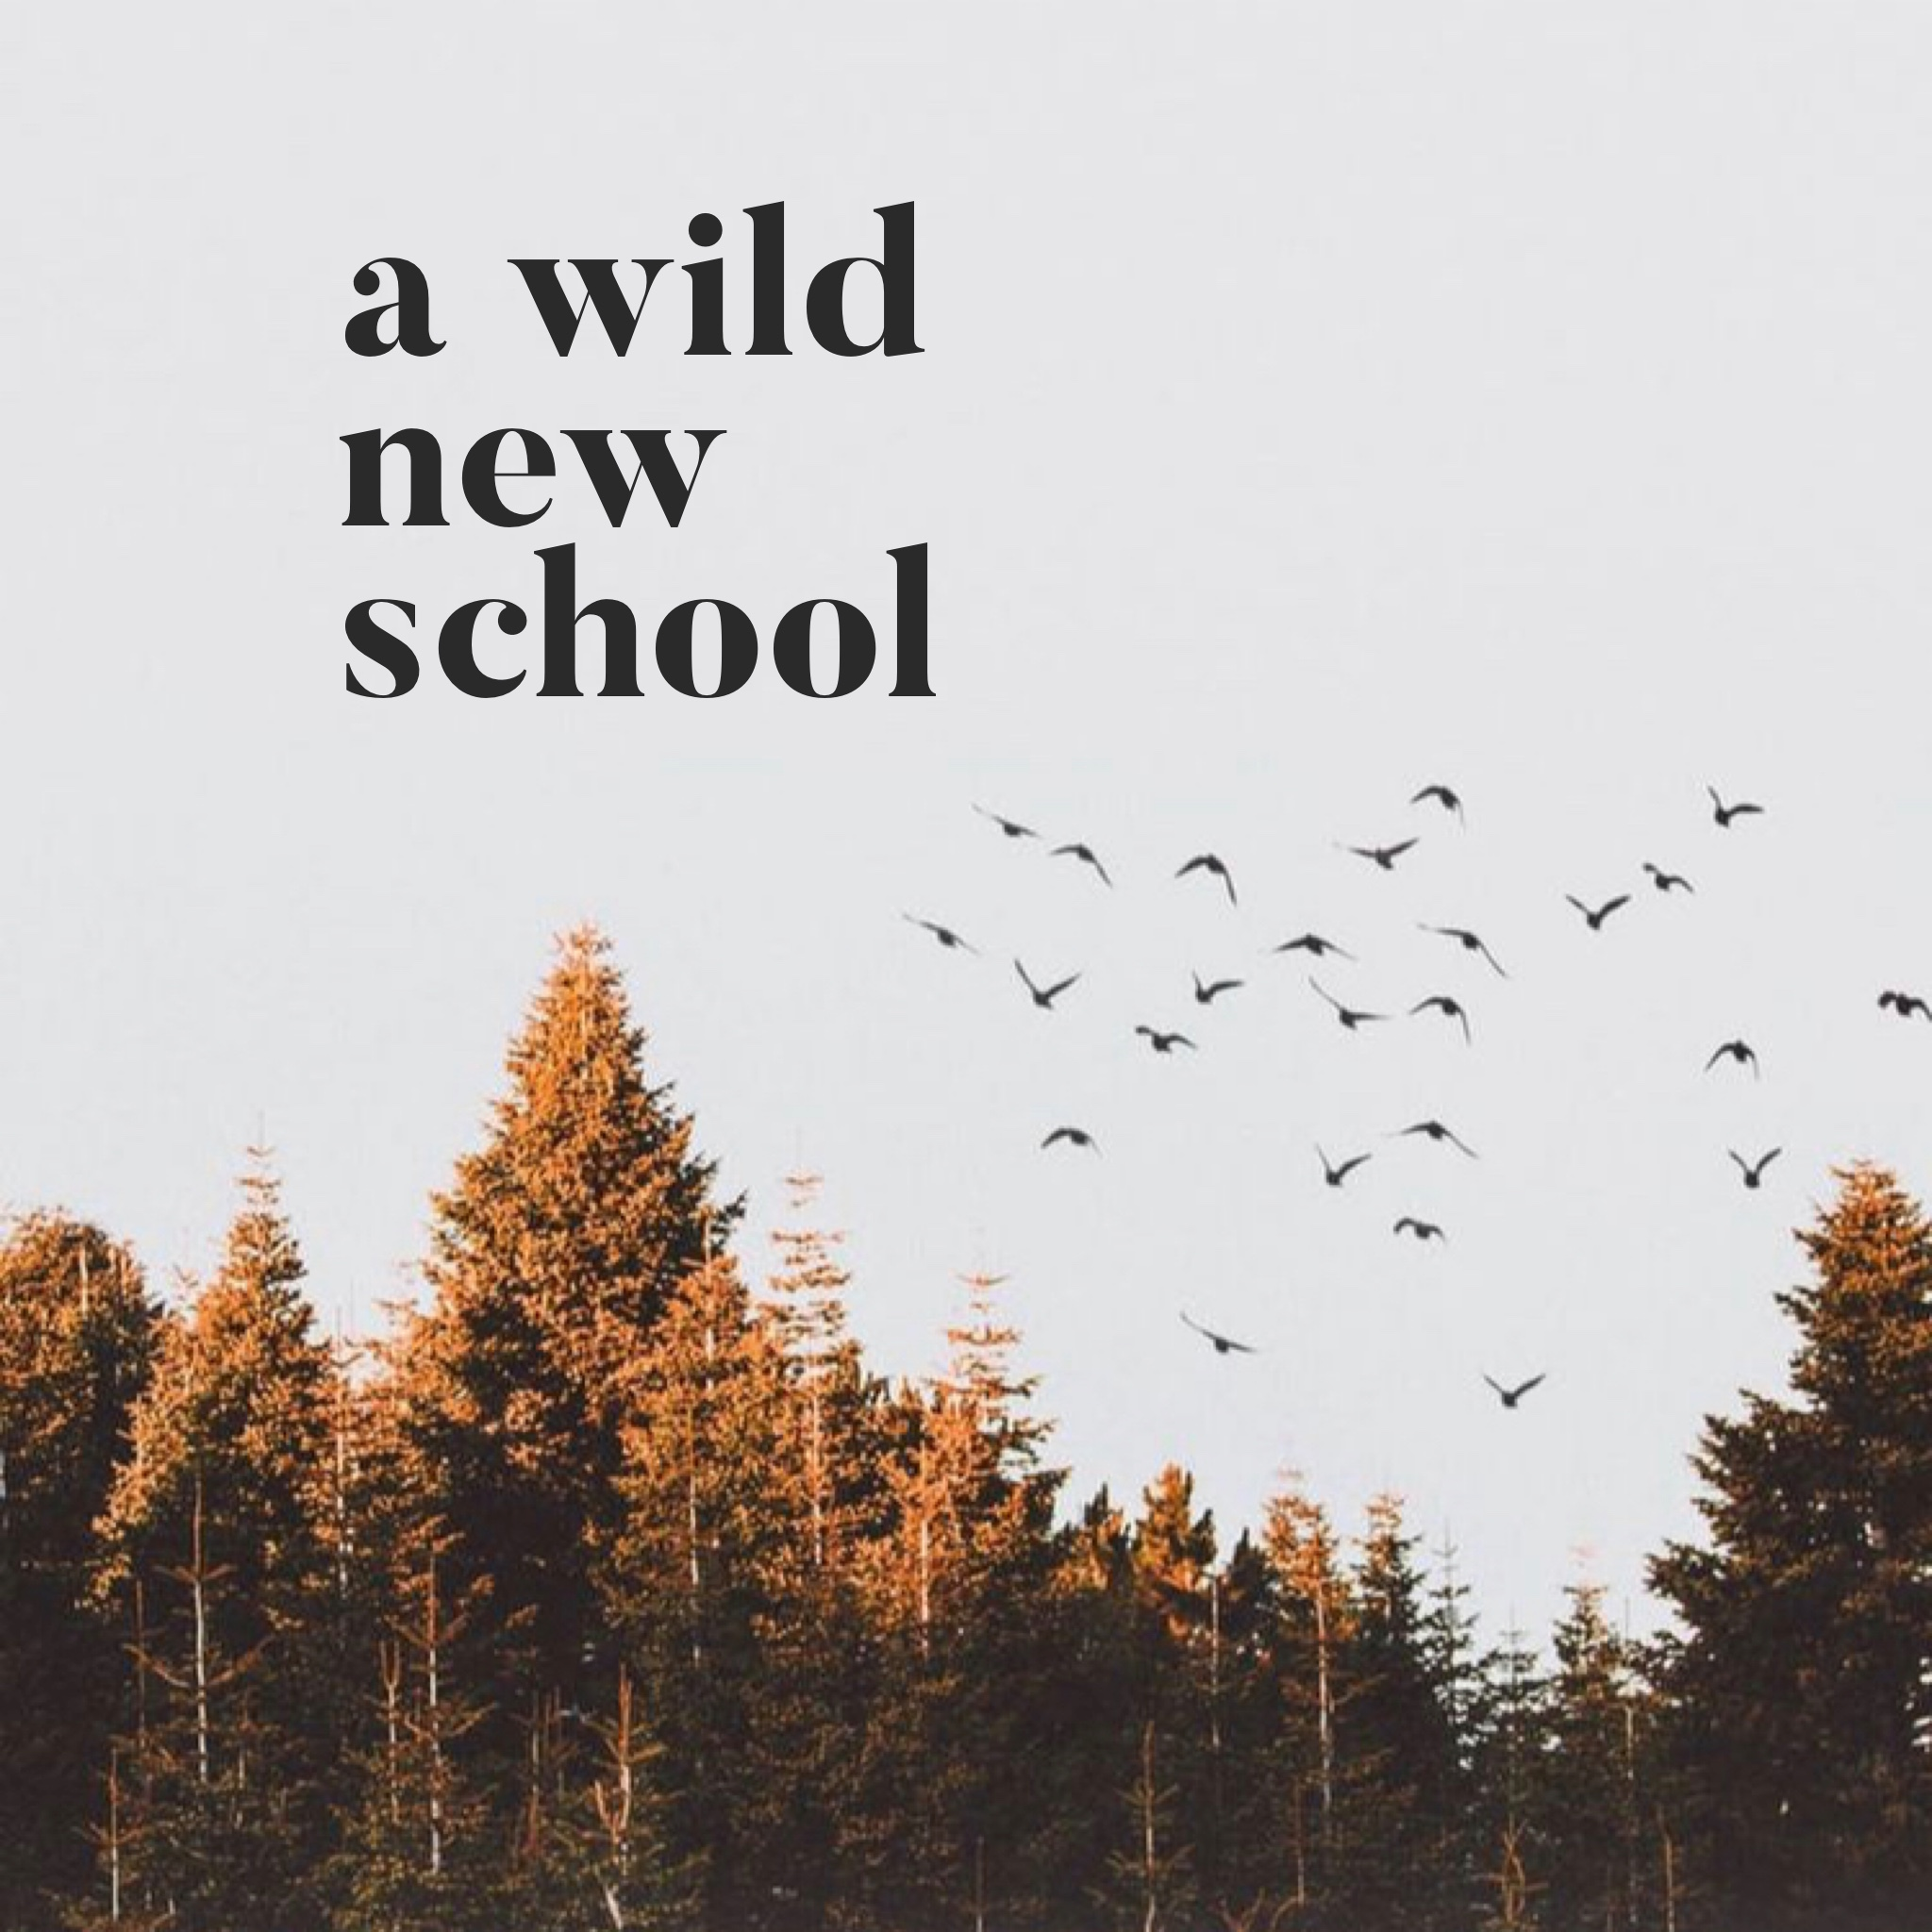 - Sign up here for A Wild New School's Newsletter! You will receive emails that offer career support, helpful resources, mindfulness practices, and additional information about each of our Seasonal Sessions for A Wild New School. Our Summer Session: Expand is now closed for enrollment but we will be sharing details soon about our upcoming Fall course.Sign up for our newsletter here!!